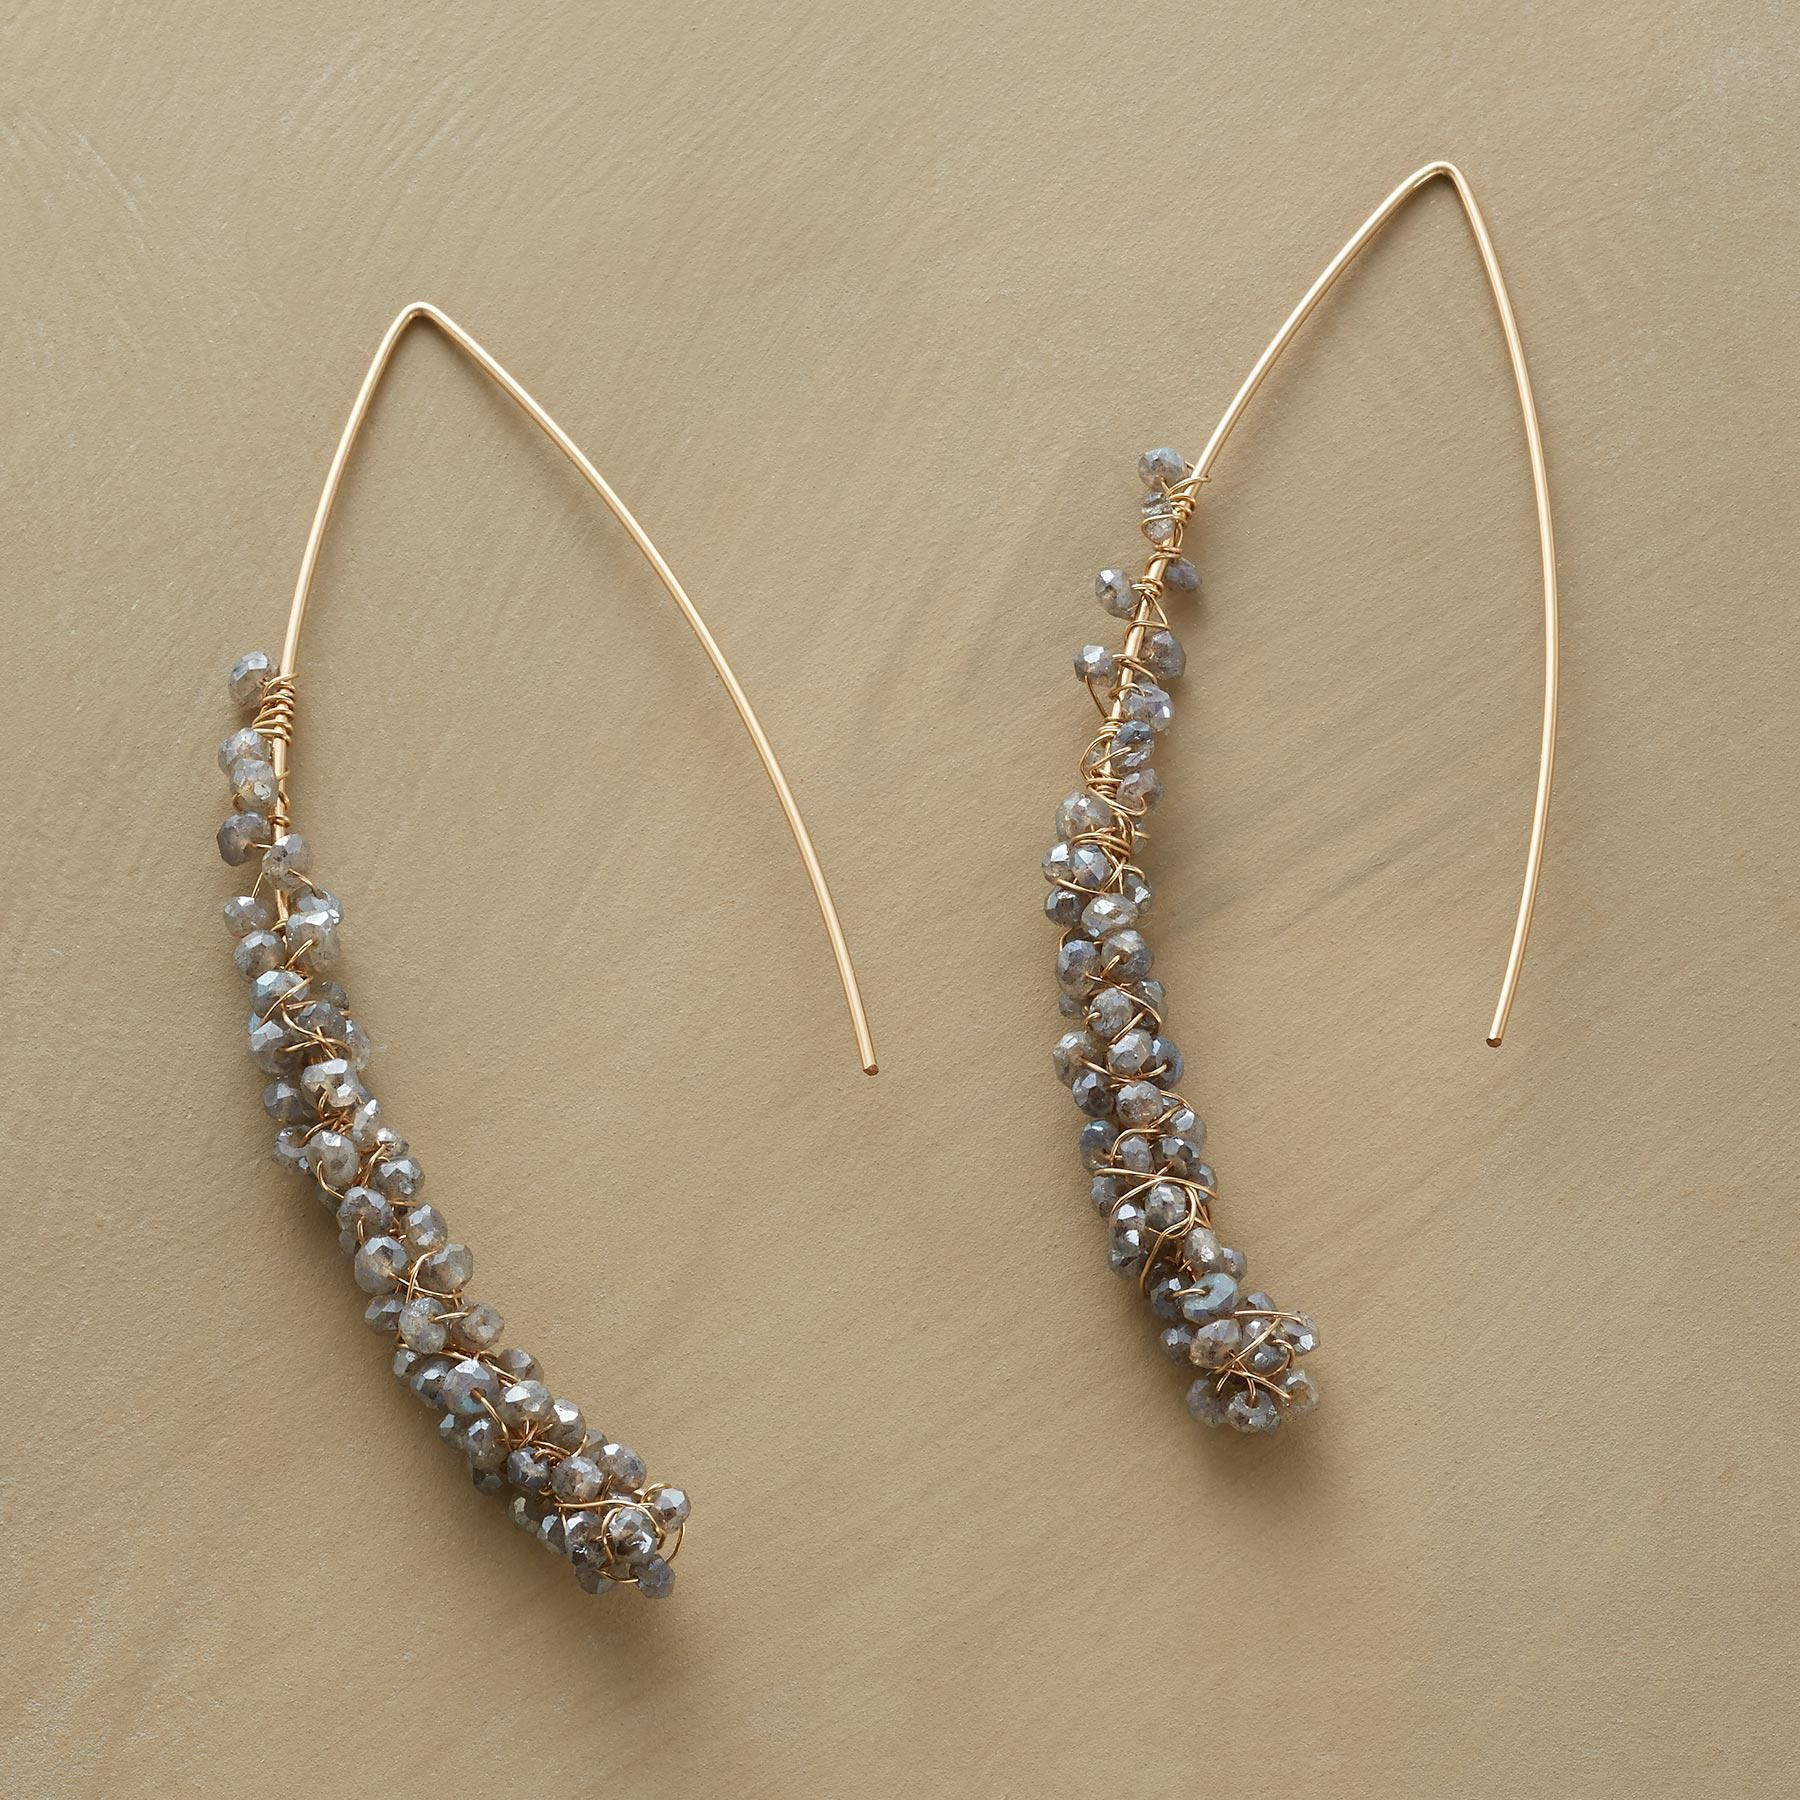 Faceted Citrine and Amazonite 1 of a Kind Elegant Earrings DANCER